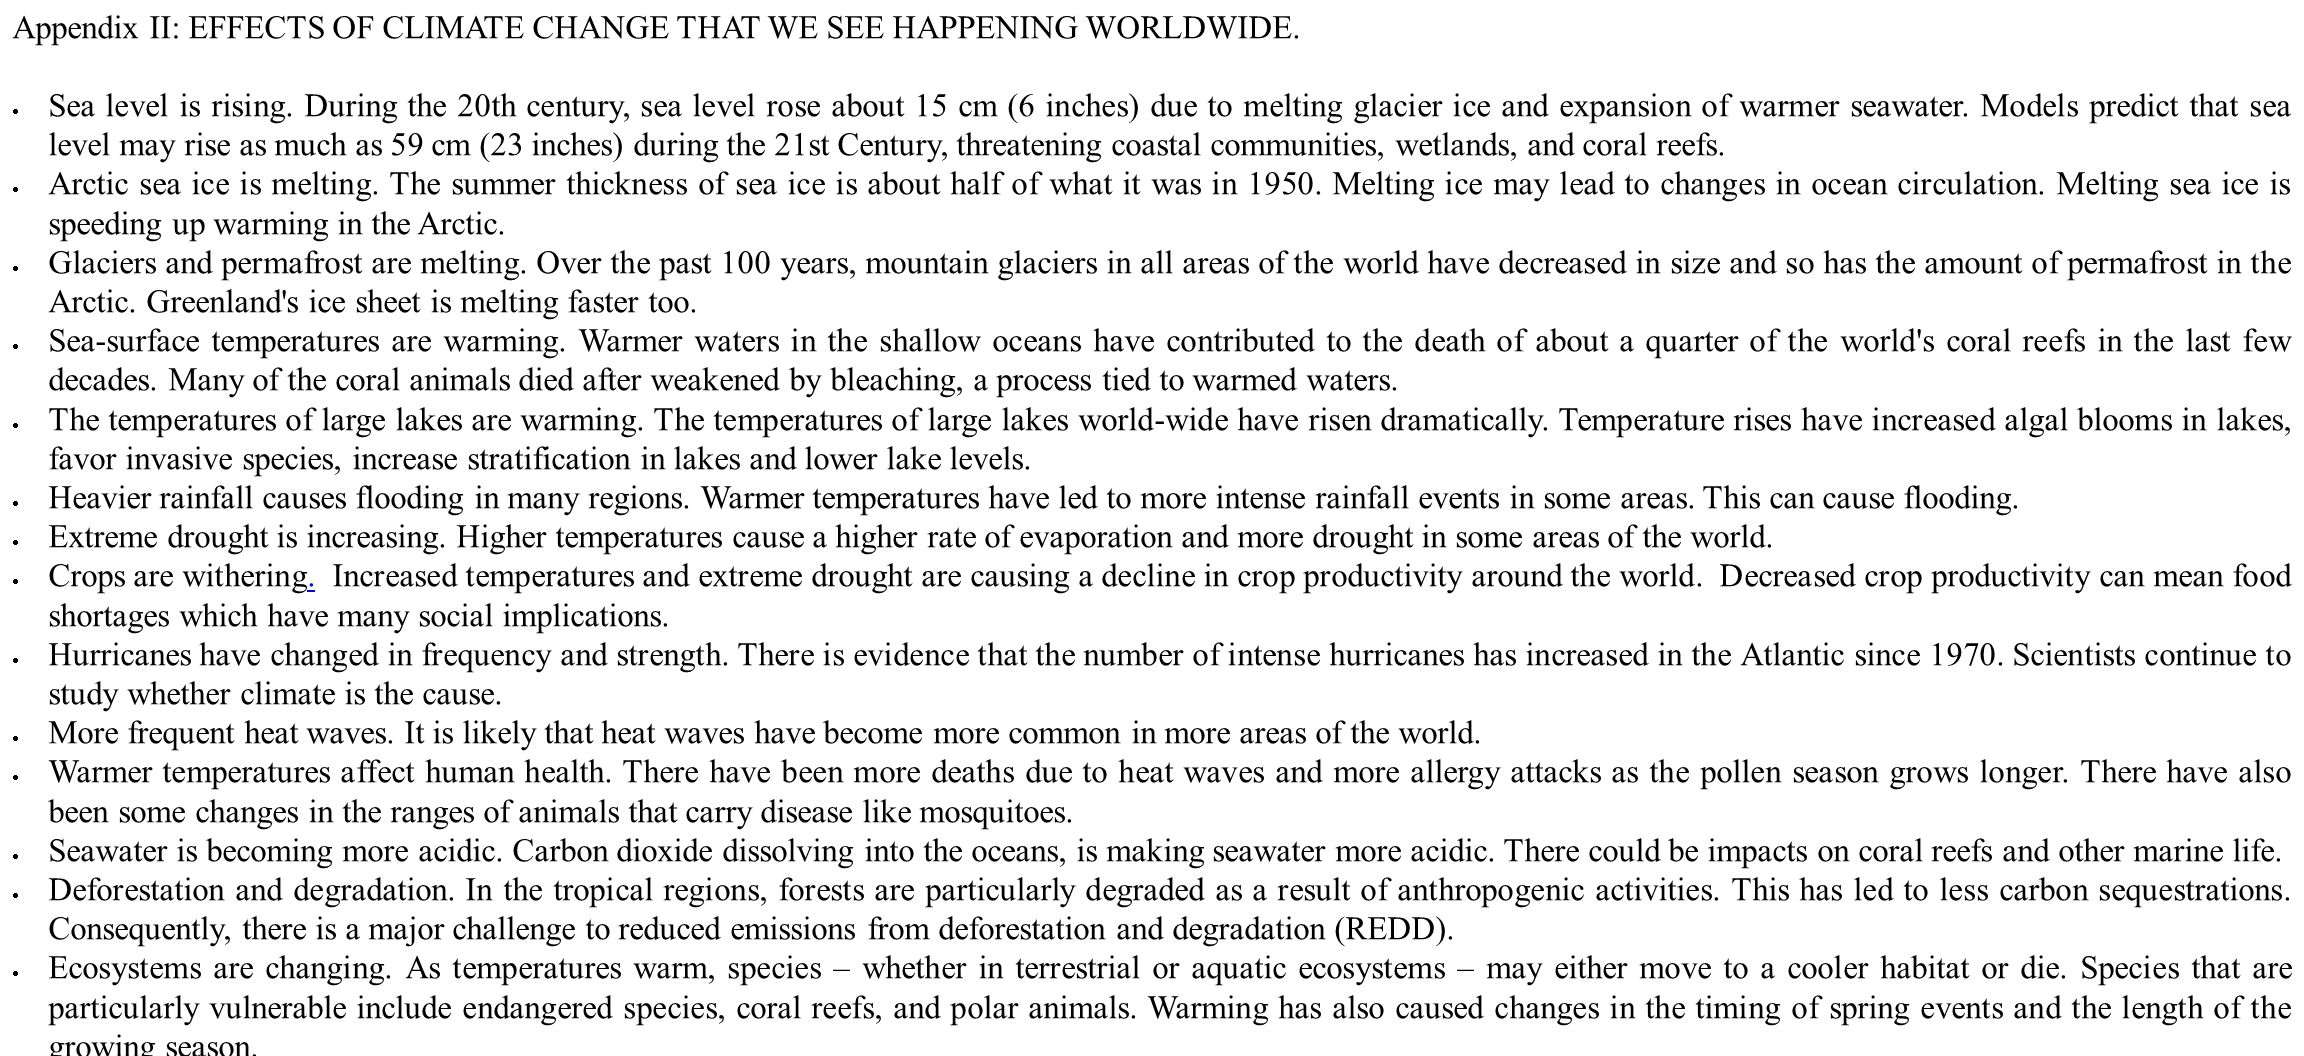 Appendix II: EFFECTS OF CLIMATE CHANGE THAT WE SEE HAPPENING WORLDWIDE.